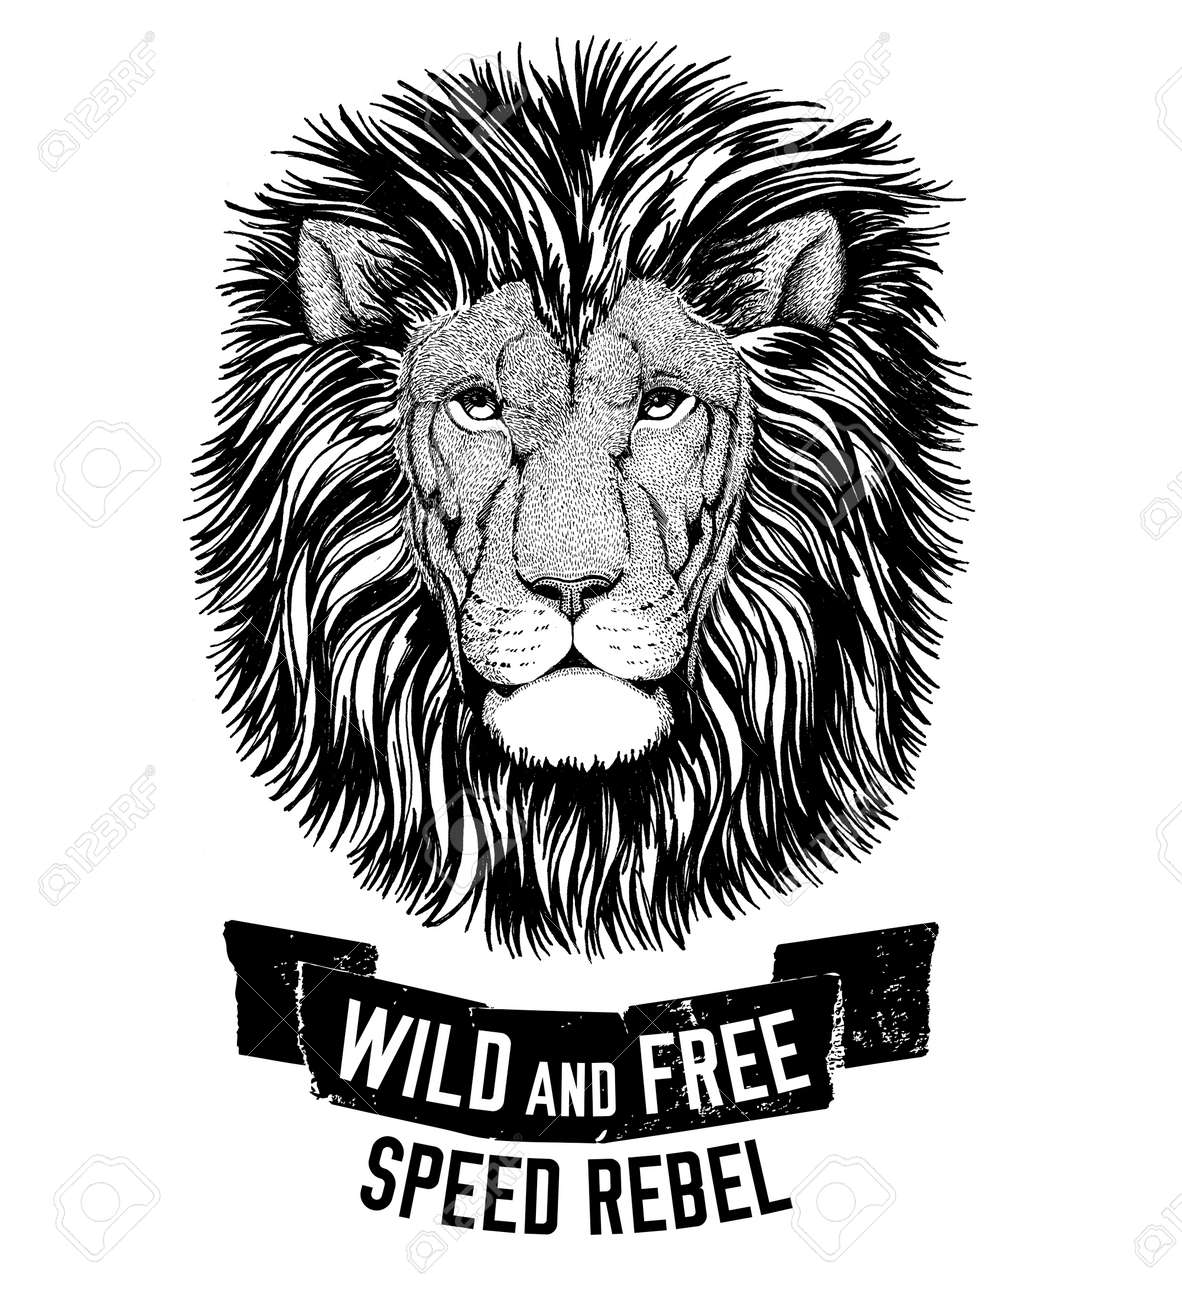 wild lion wild cat be wild and free t shirt emblem template stock